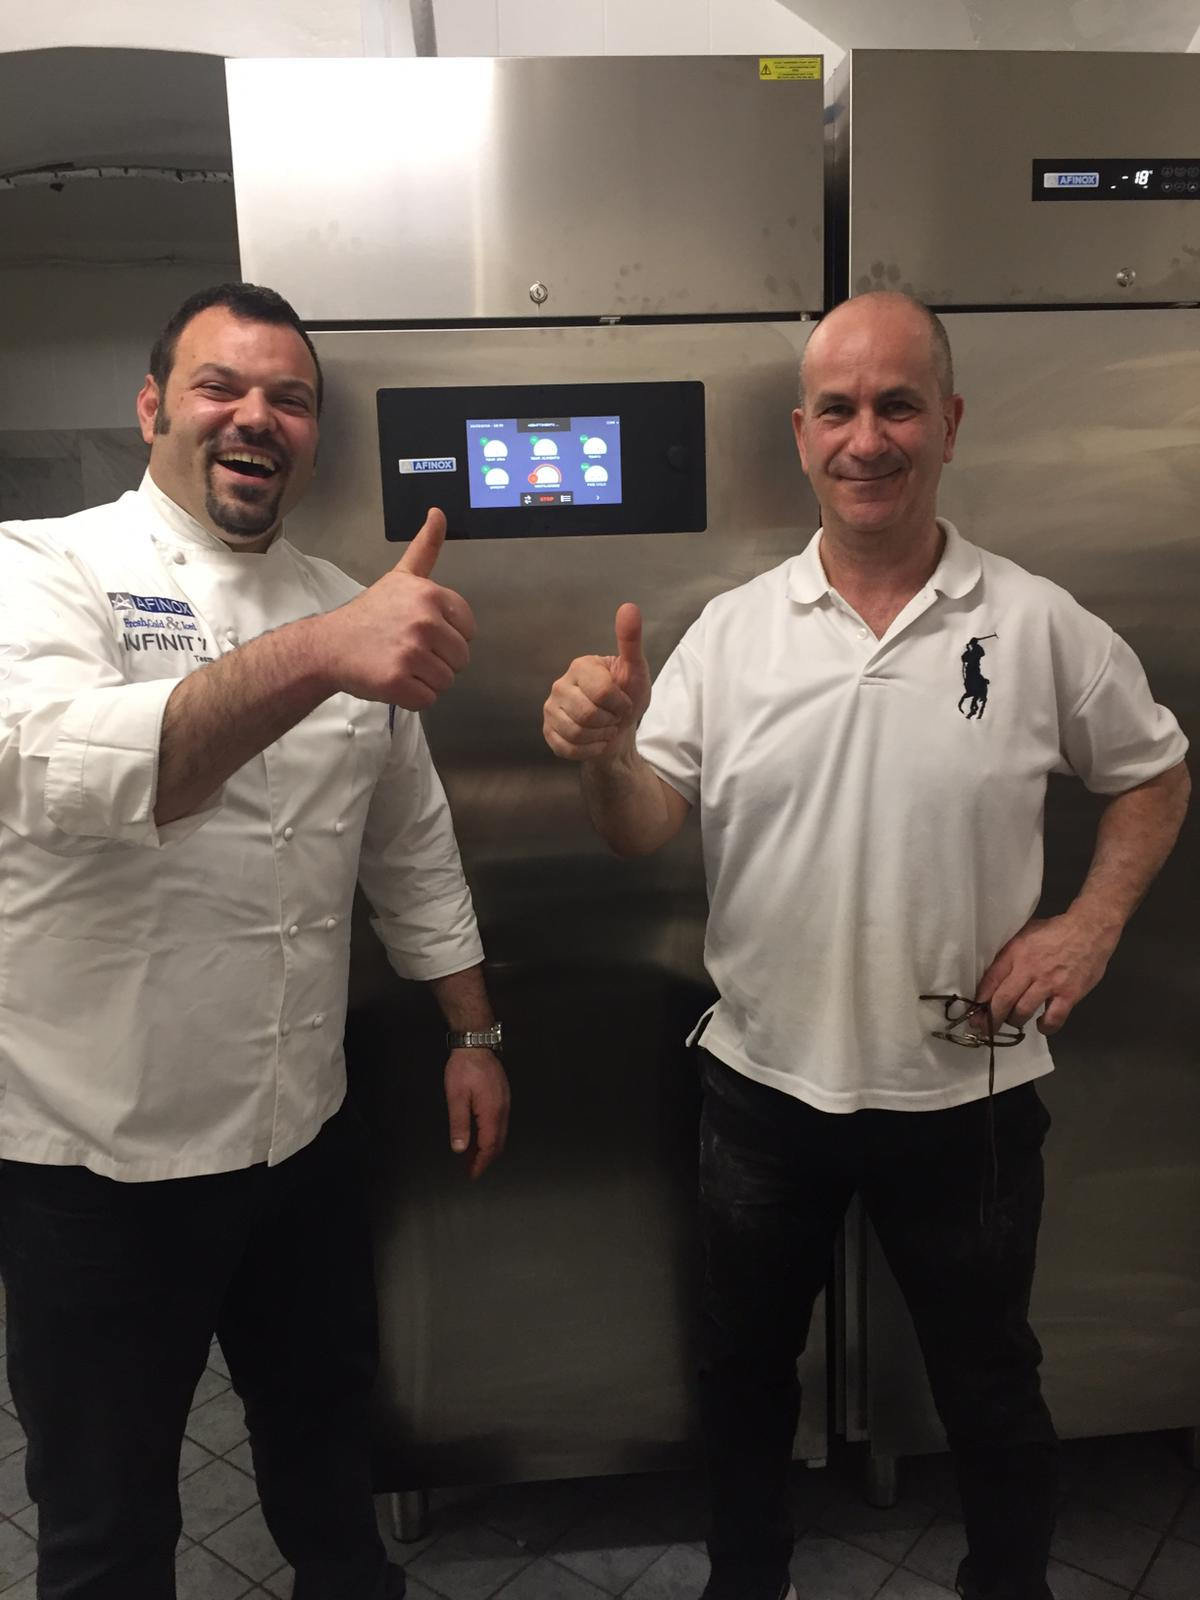 chef consulting, chef consulting service